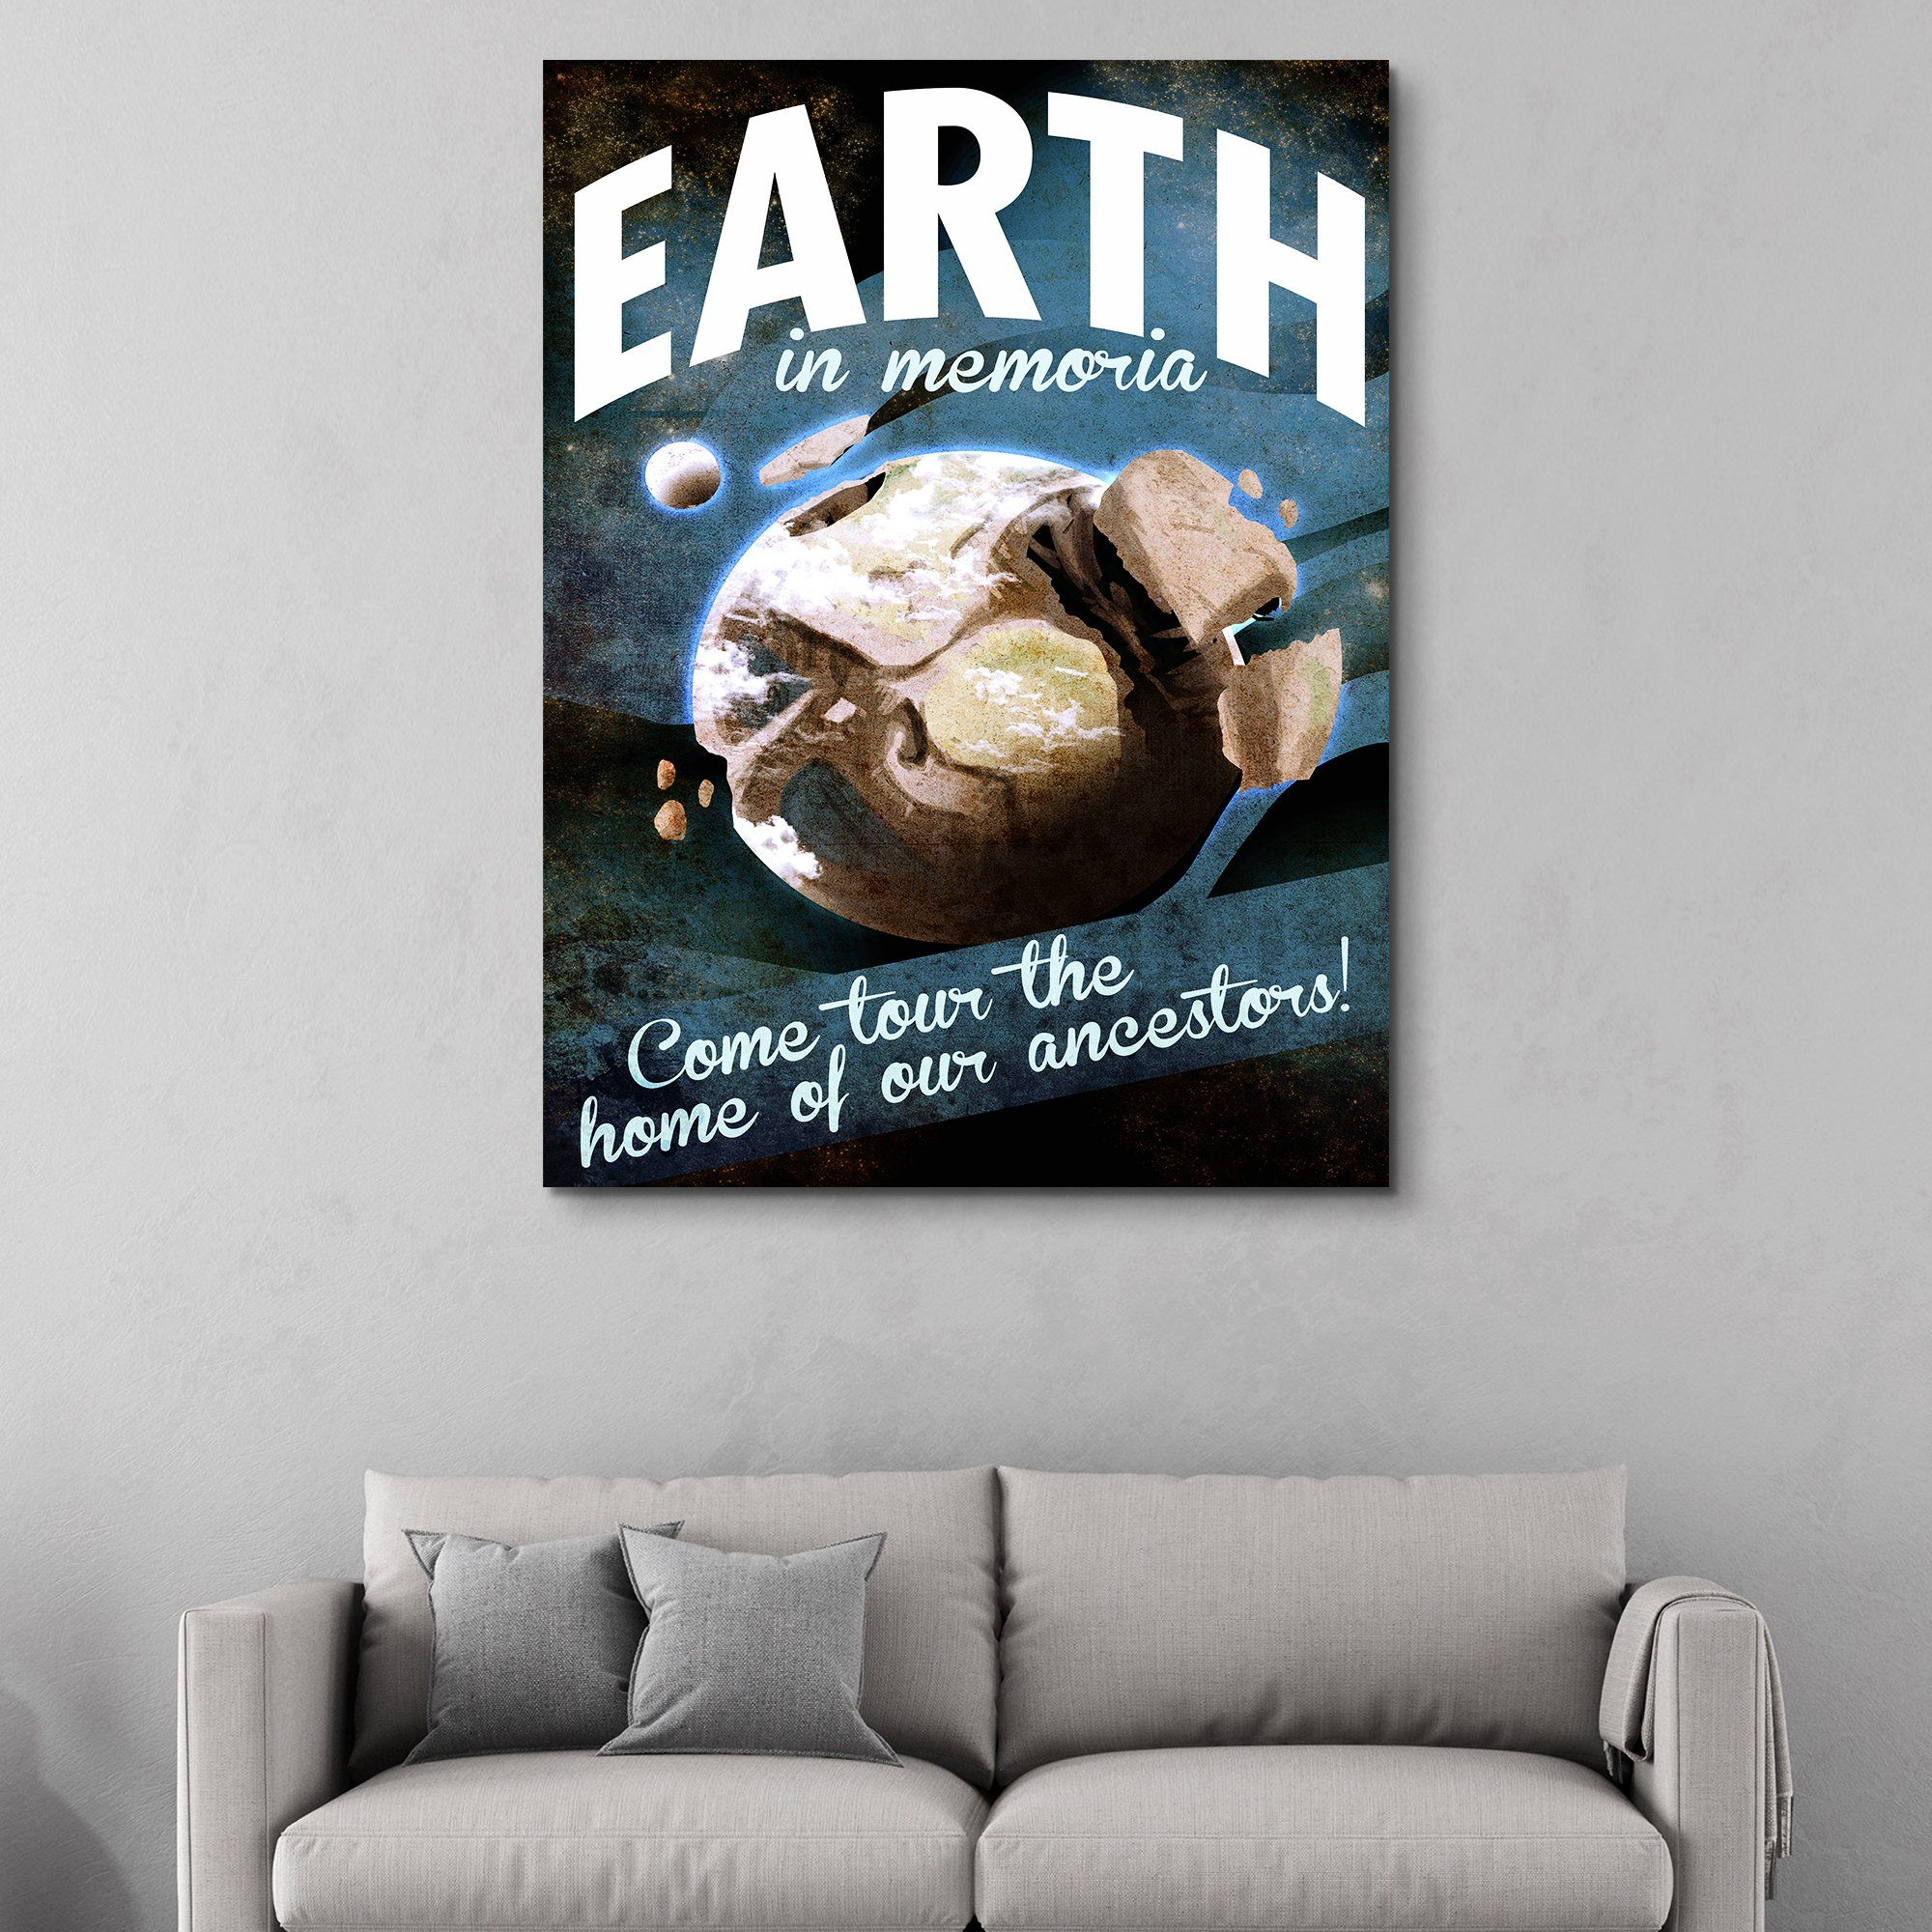 Earth - Futuristic Planet Series wall art